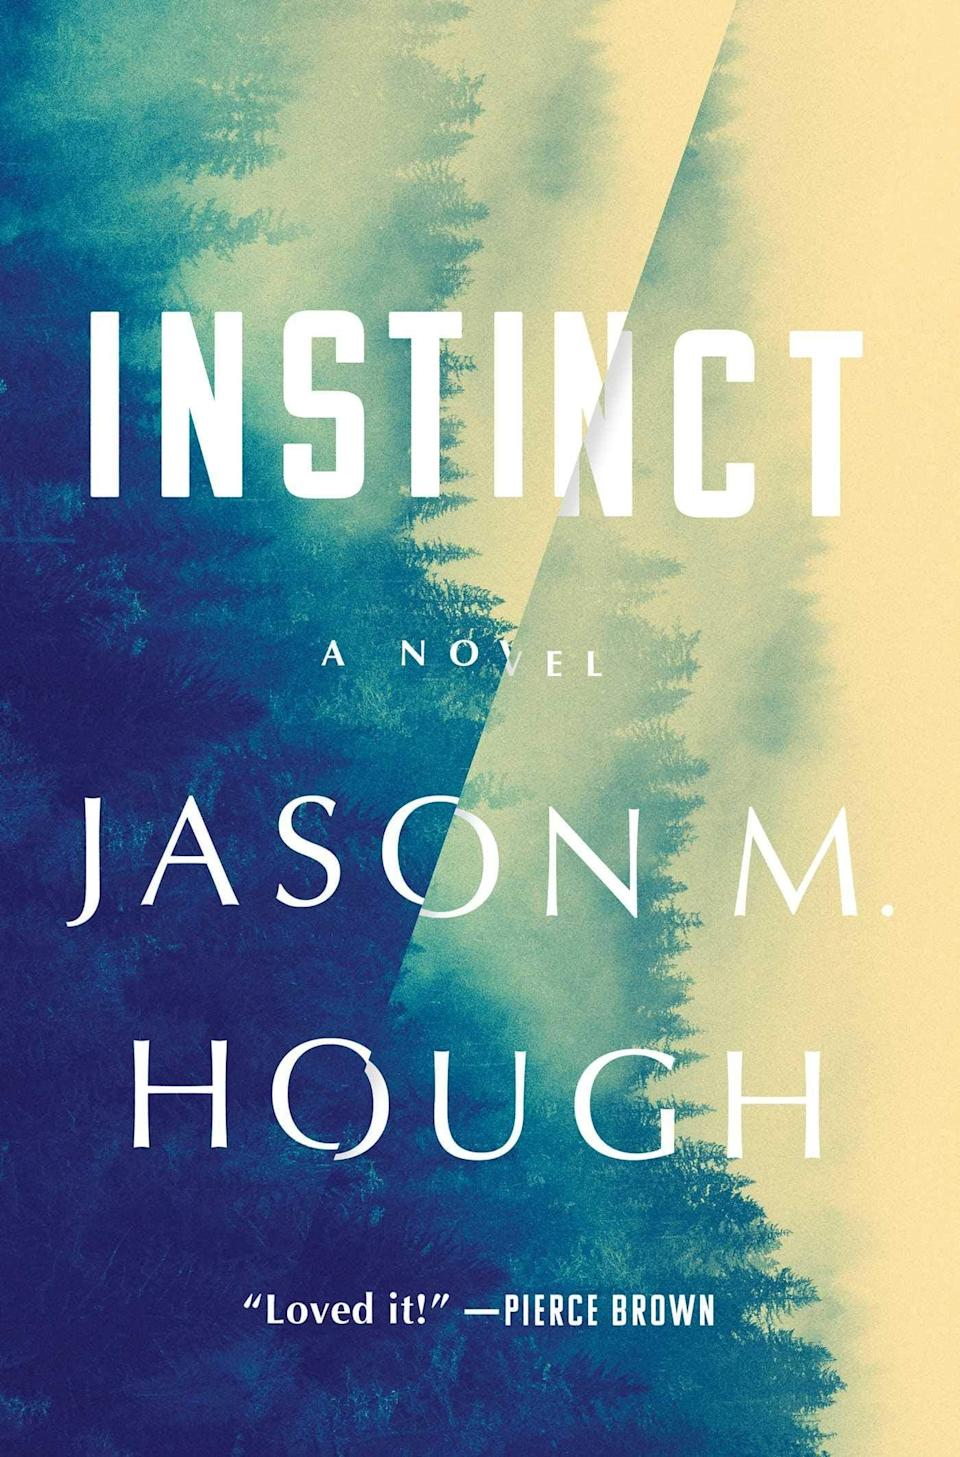 "<p>If you were a fan of <strong>The X-Files</strong>, then <a href=""https://www.amazon.com/Instinct-Novel-Jason-M-Hough/dp/1501181394"" class=""link rapid-noclick-resp"" rel=""nofollow noopener"" target=""_blank"" data-ylk=""slk:Instinct""><strong>Instinct</strong></a> by Jason M. Hough is sure to give you major Mulder and Scully vibes. Set in the small town of Silvertown, Washington, where conspiracy theories reign supreme, a series of baffling deaths suggest the townsfolk are losing their survival instinct. Now, it's up to local police officer Mary Whittaker to unravel this strange mystery before she becomes a victim of whatever is affecting the rest of the town.</p> <p><em>Out April 6</em></p>"